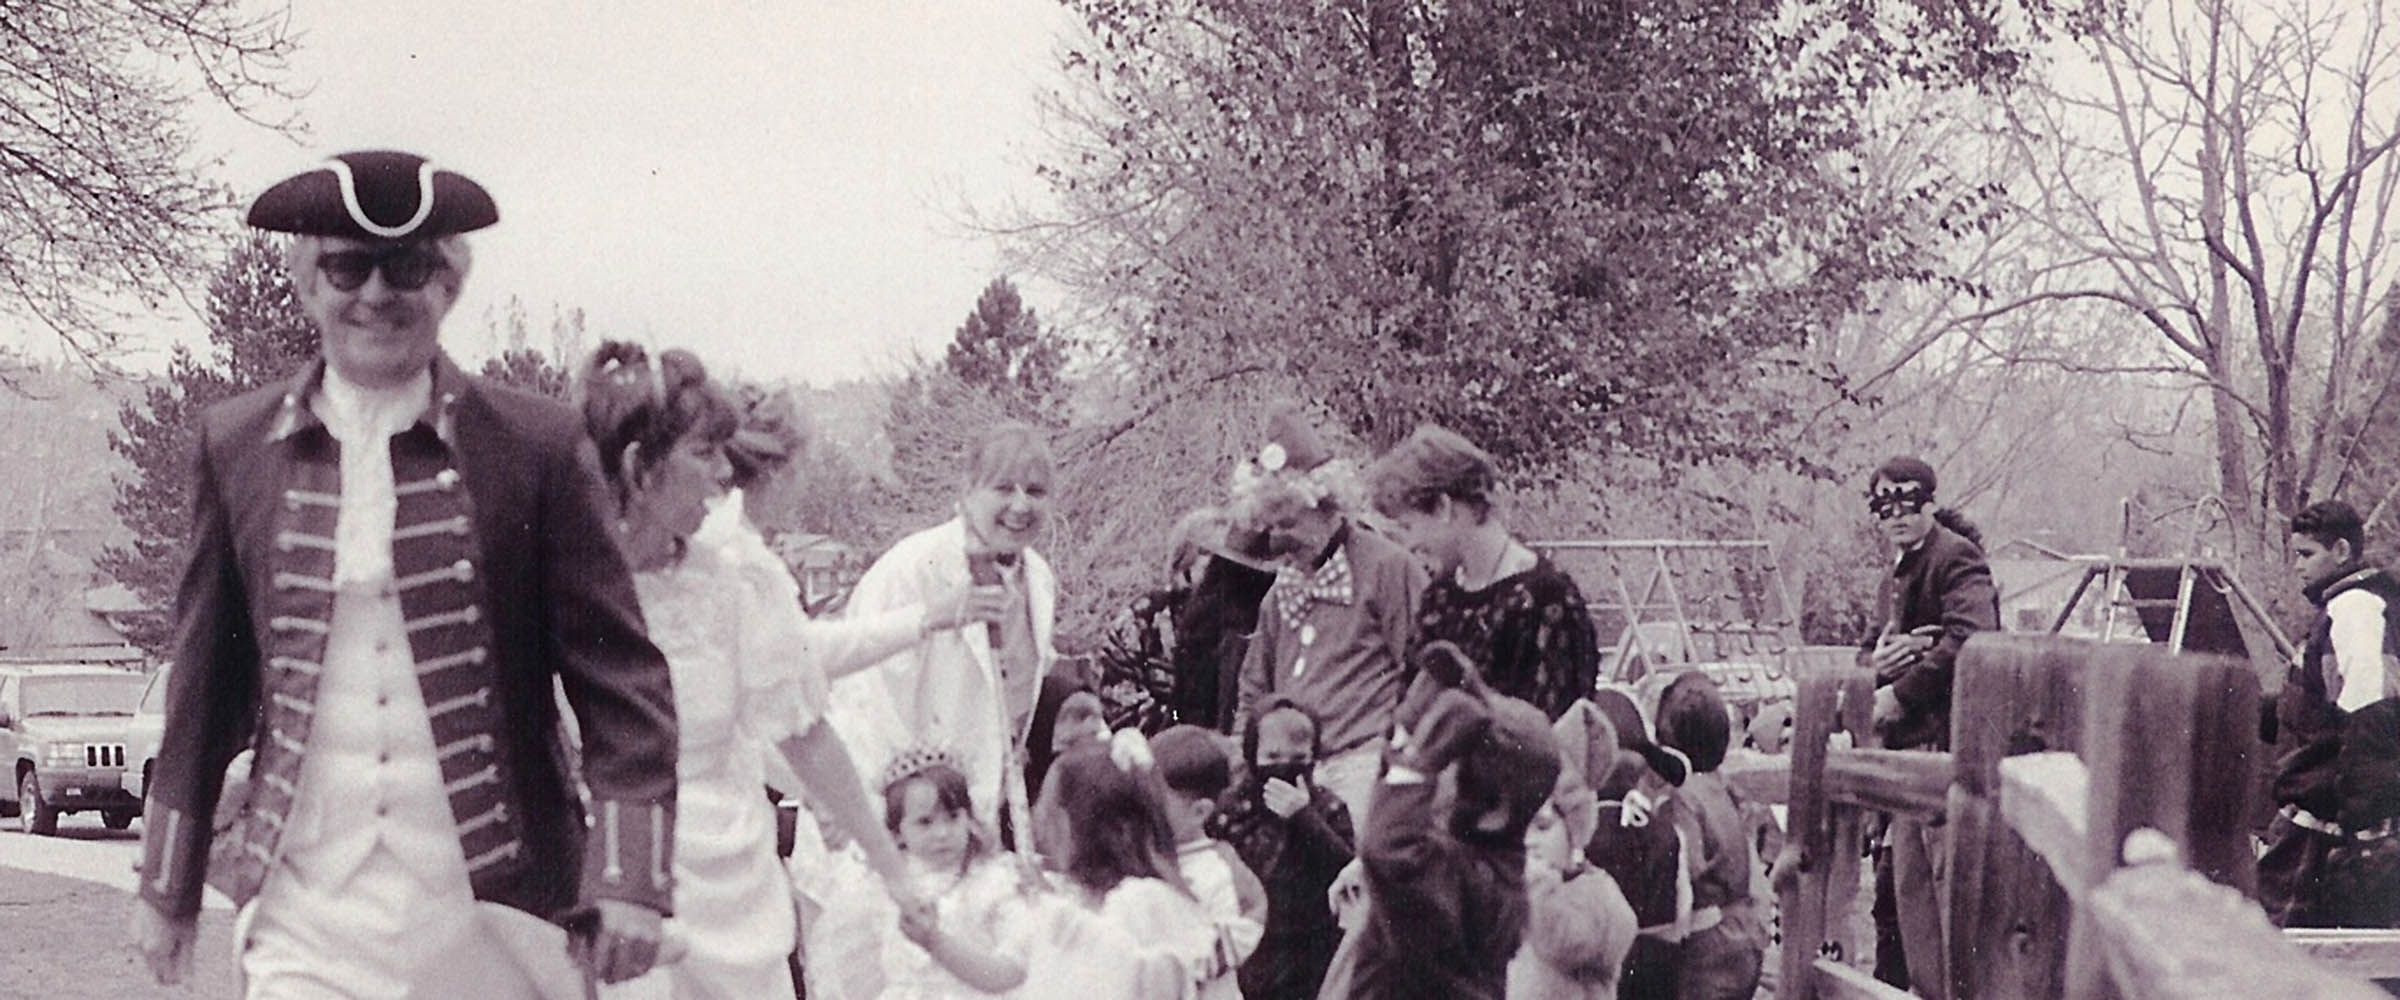 Lower School Principal Tom Fitzgerald leads the annual Halloween Parade at Colorado Academy, a top PK-12 private school in Denver.